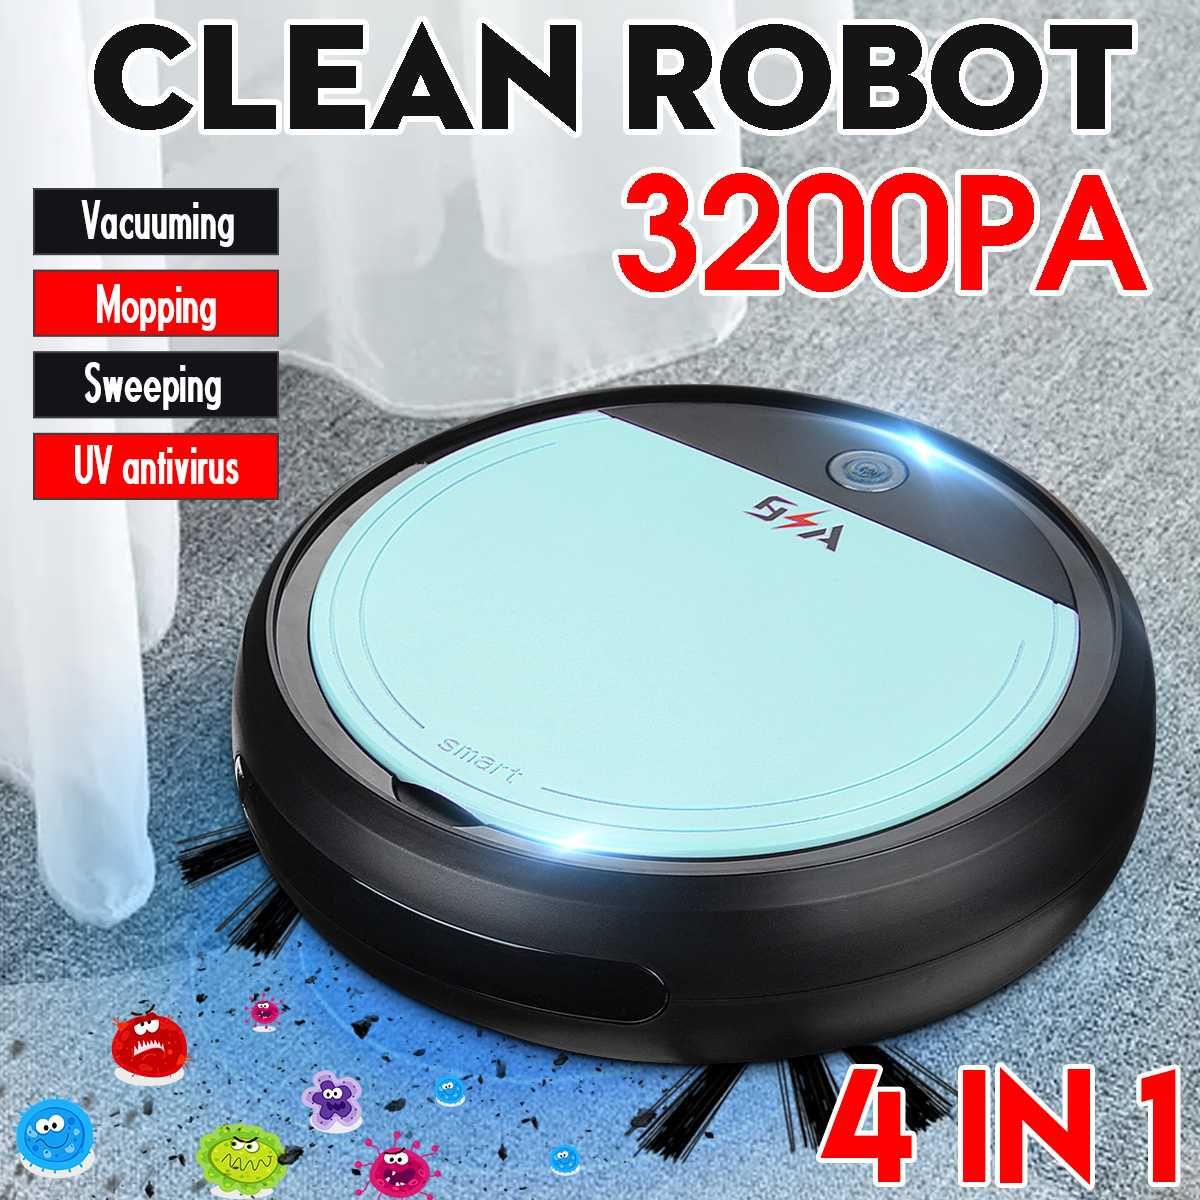 Rechargeable Smart Robot  4 In 1 Vacuum Cleaner Auto Smart Sweeping Robot UV Sterilizer Strong Suction Sweeper Vacuum Cleaners